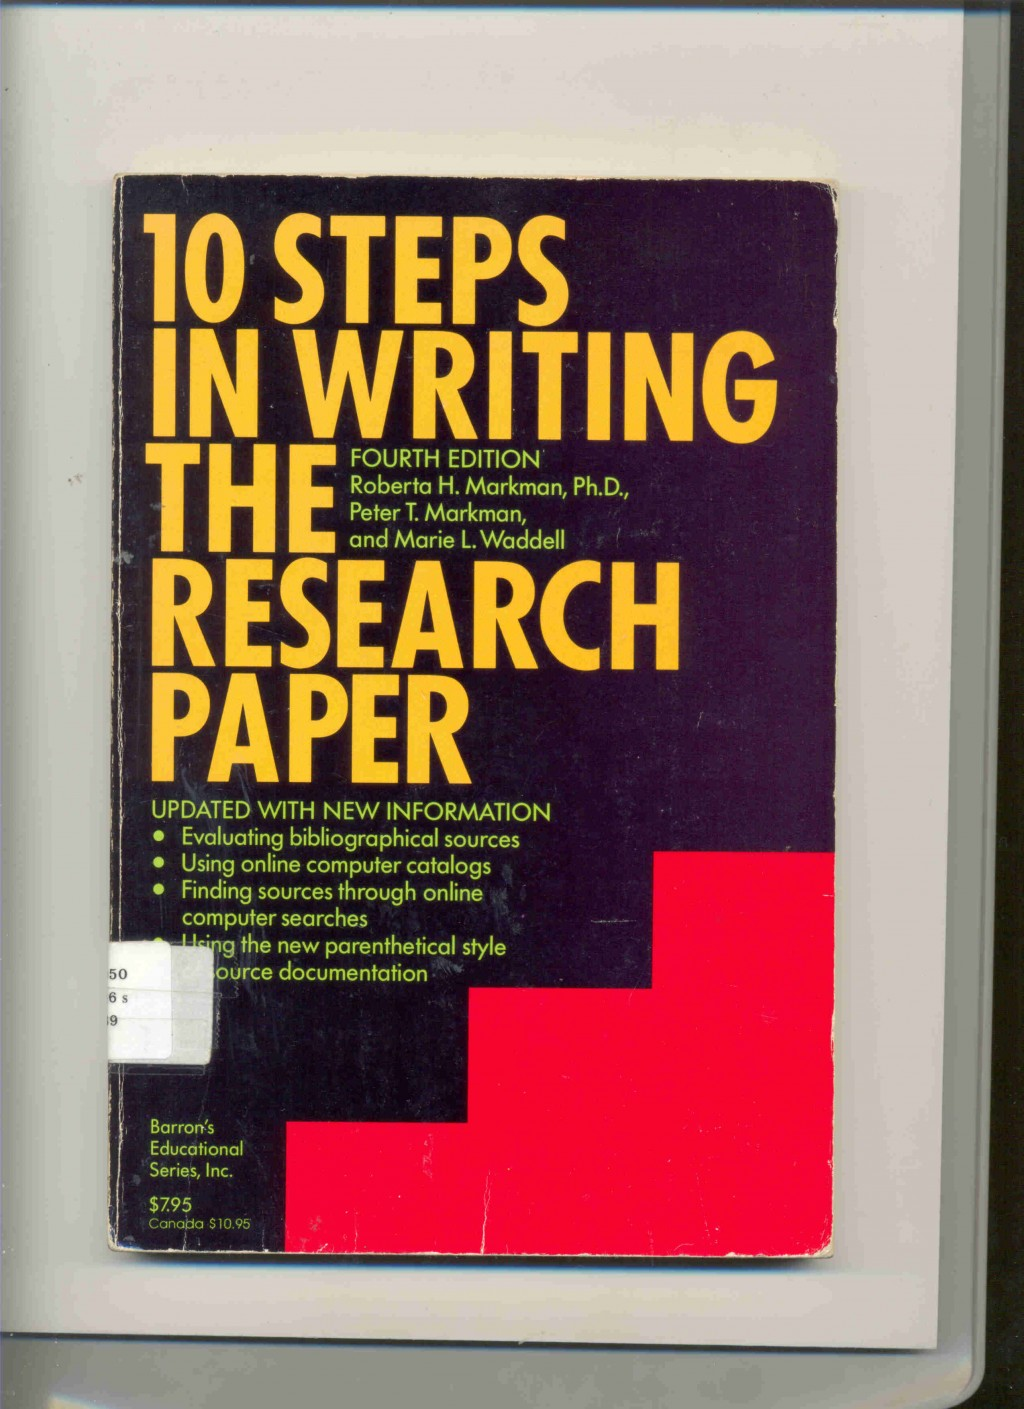 009 Steps In Writing The Research Paper Markman 1633 1 201011053654 Awful 10 Pdf Large